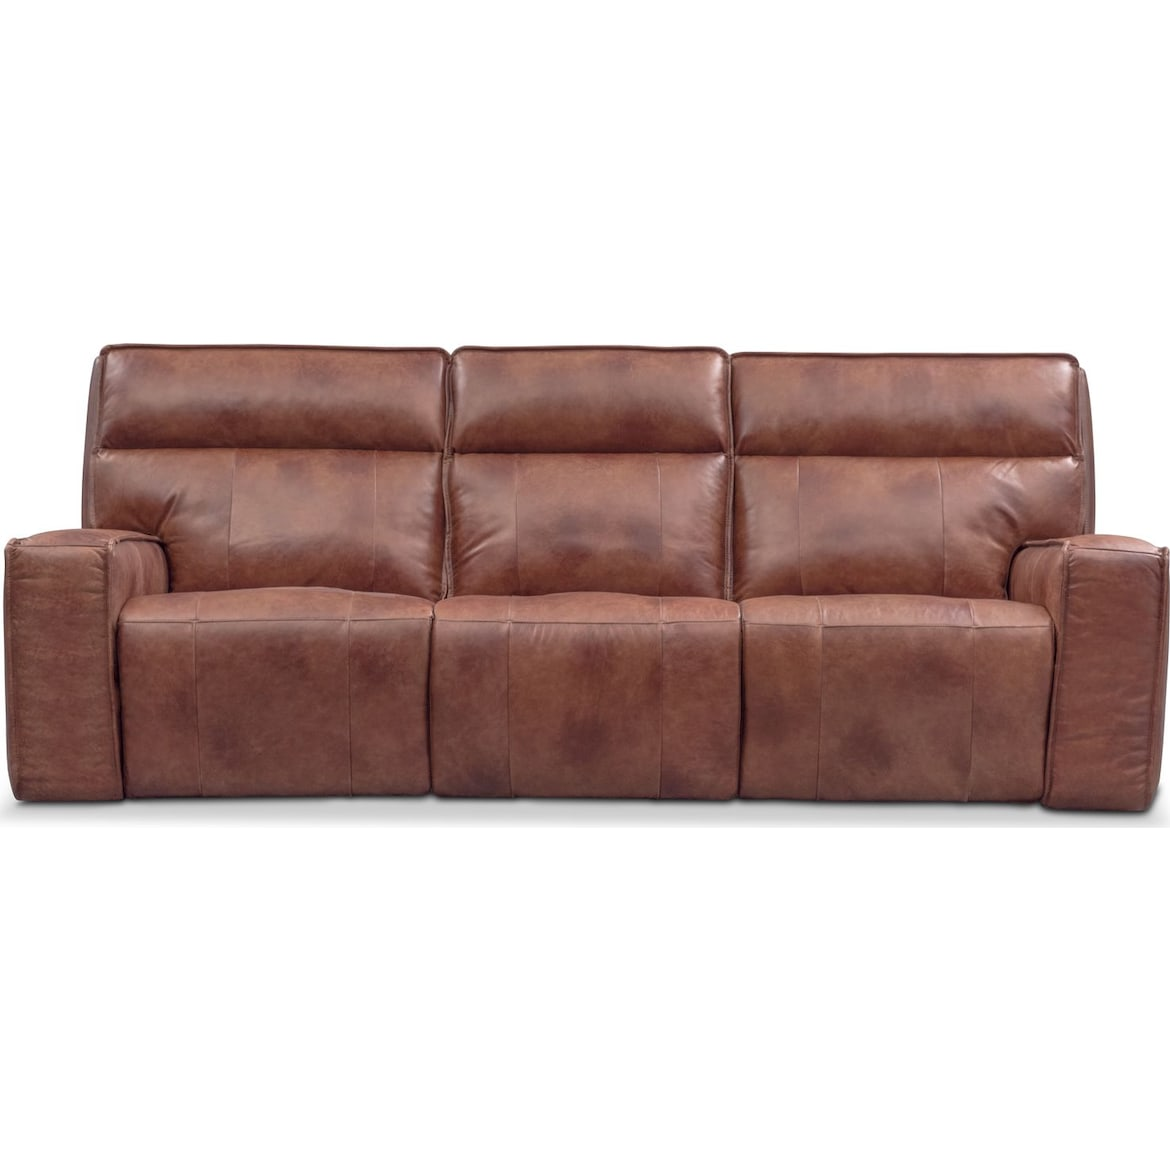 Bradley Triple Power Reclining Sofa Value City Furniture